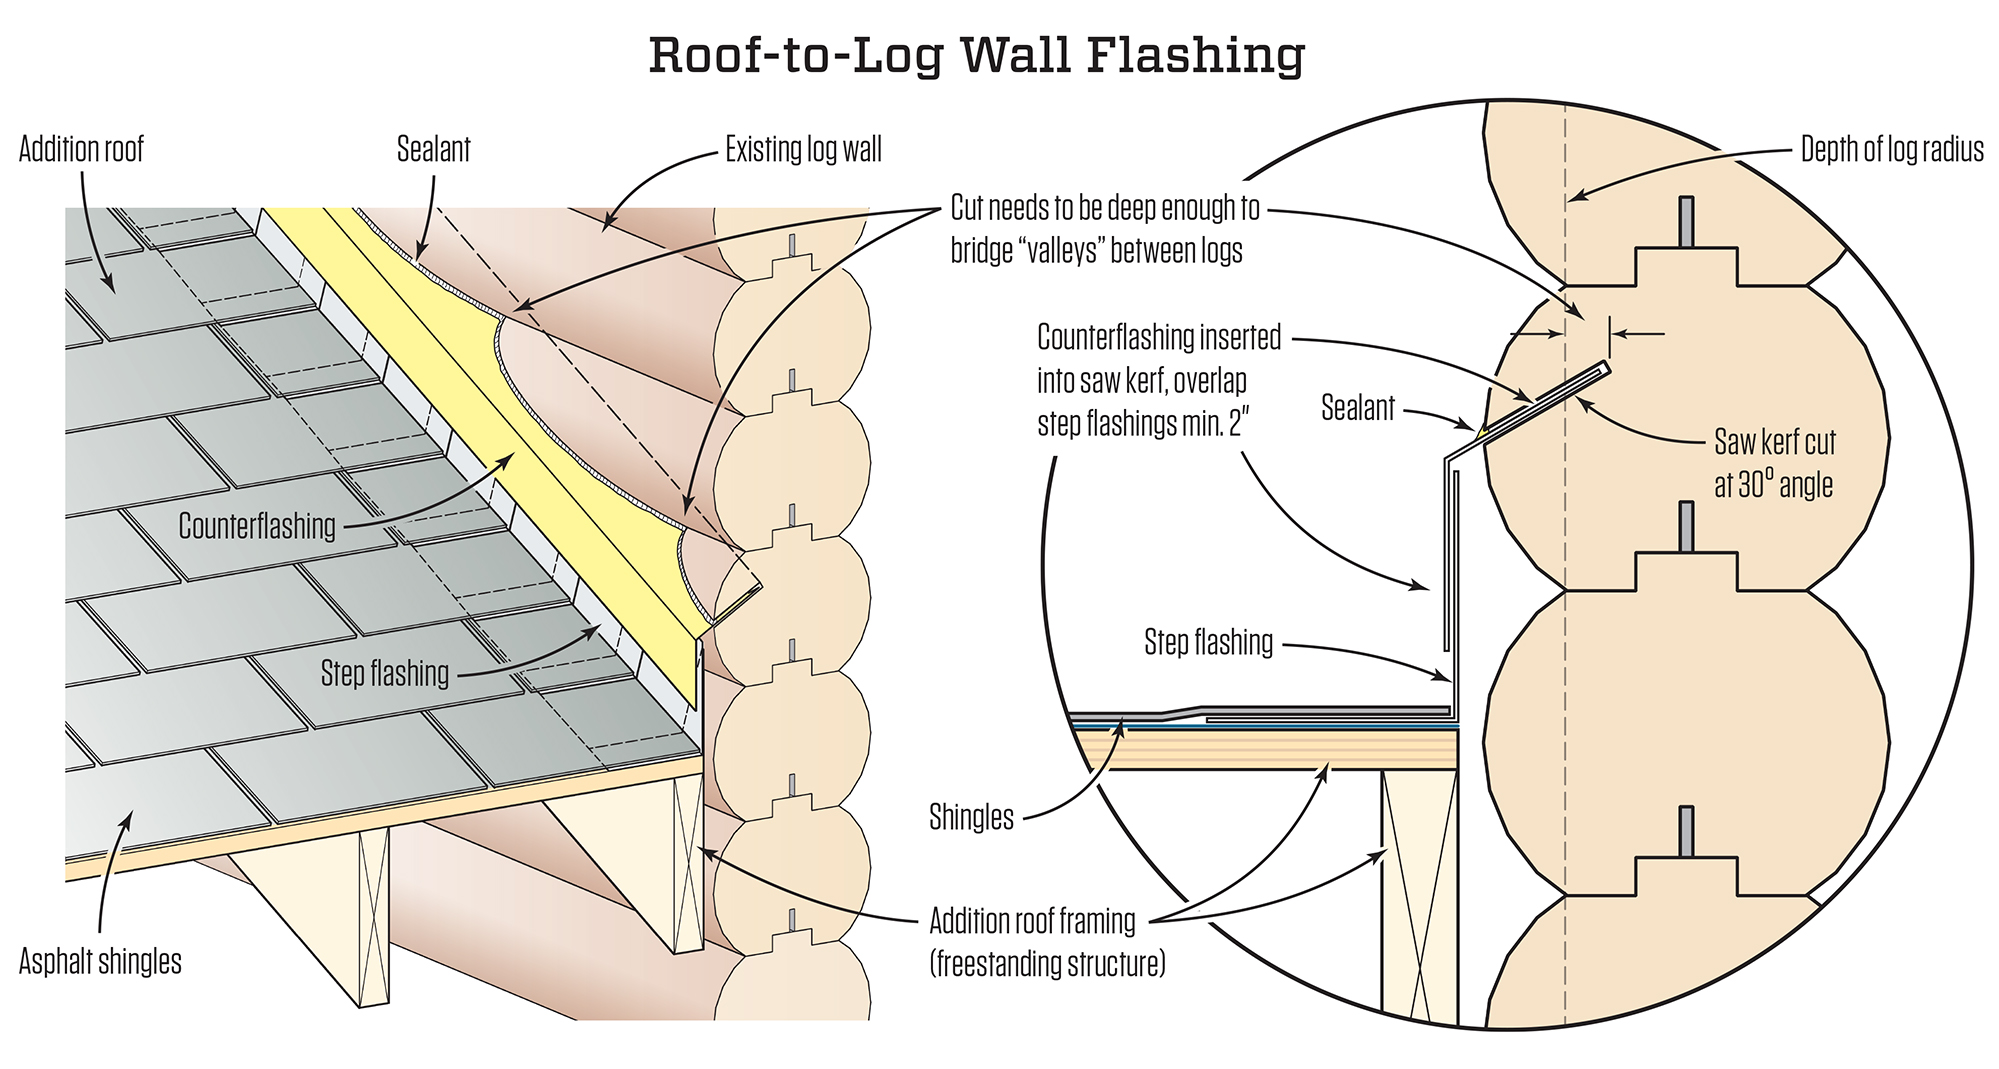 flashing a roof to a log wall jlc online flashing siding exteriors - Roof To Wall Flashing